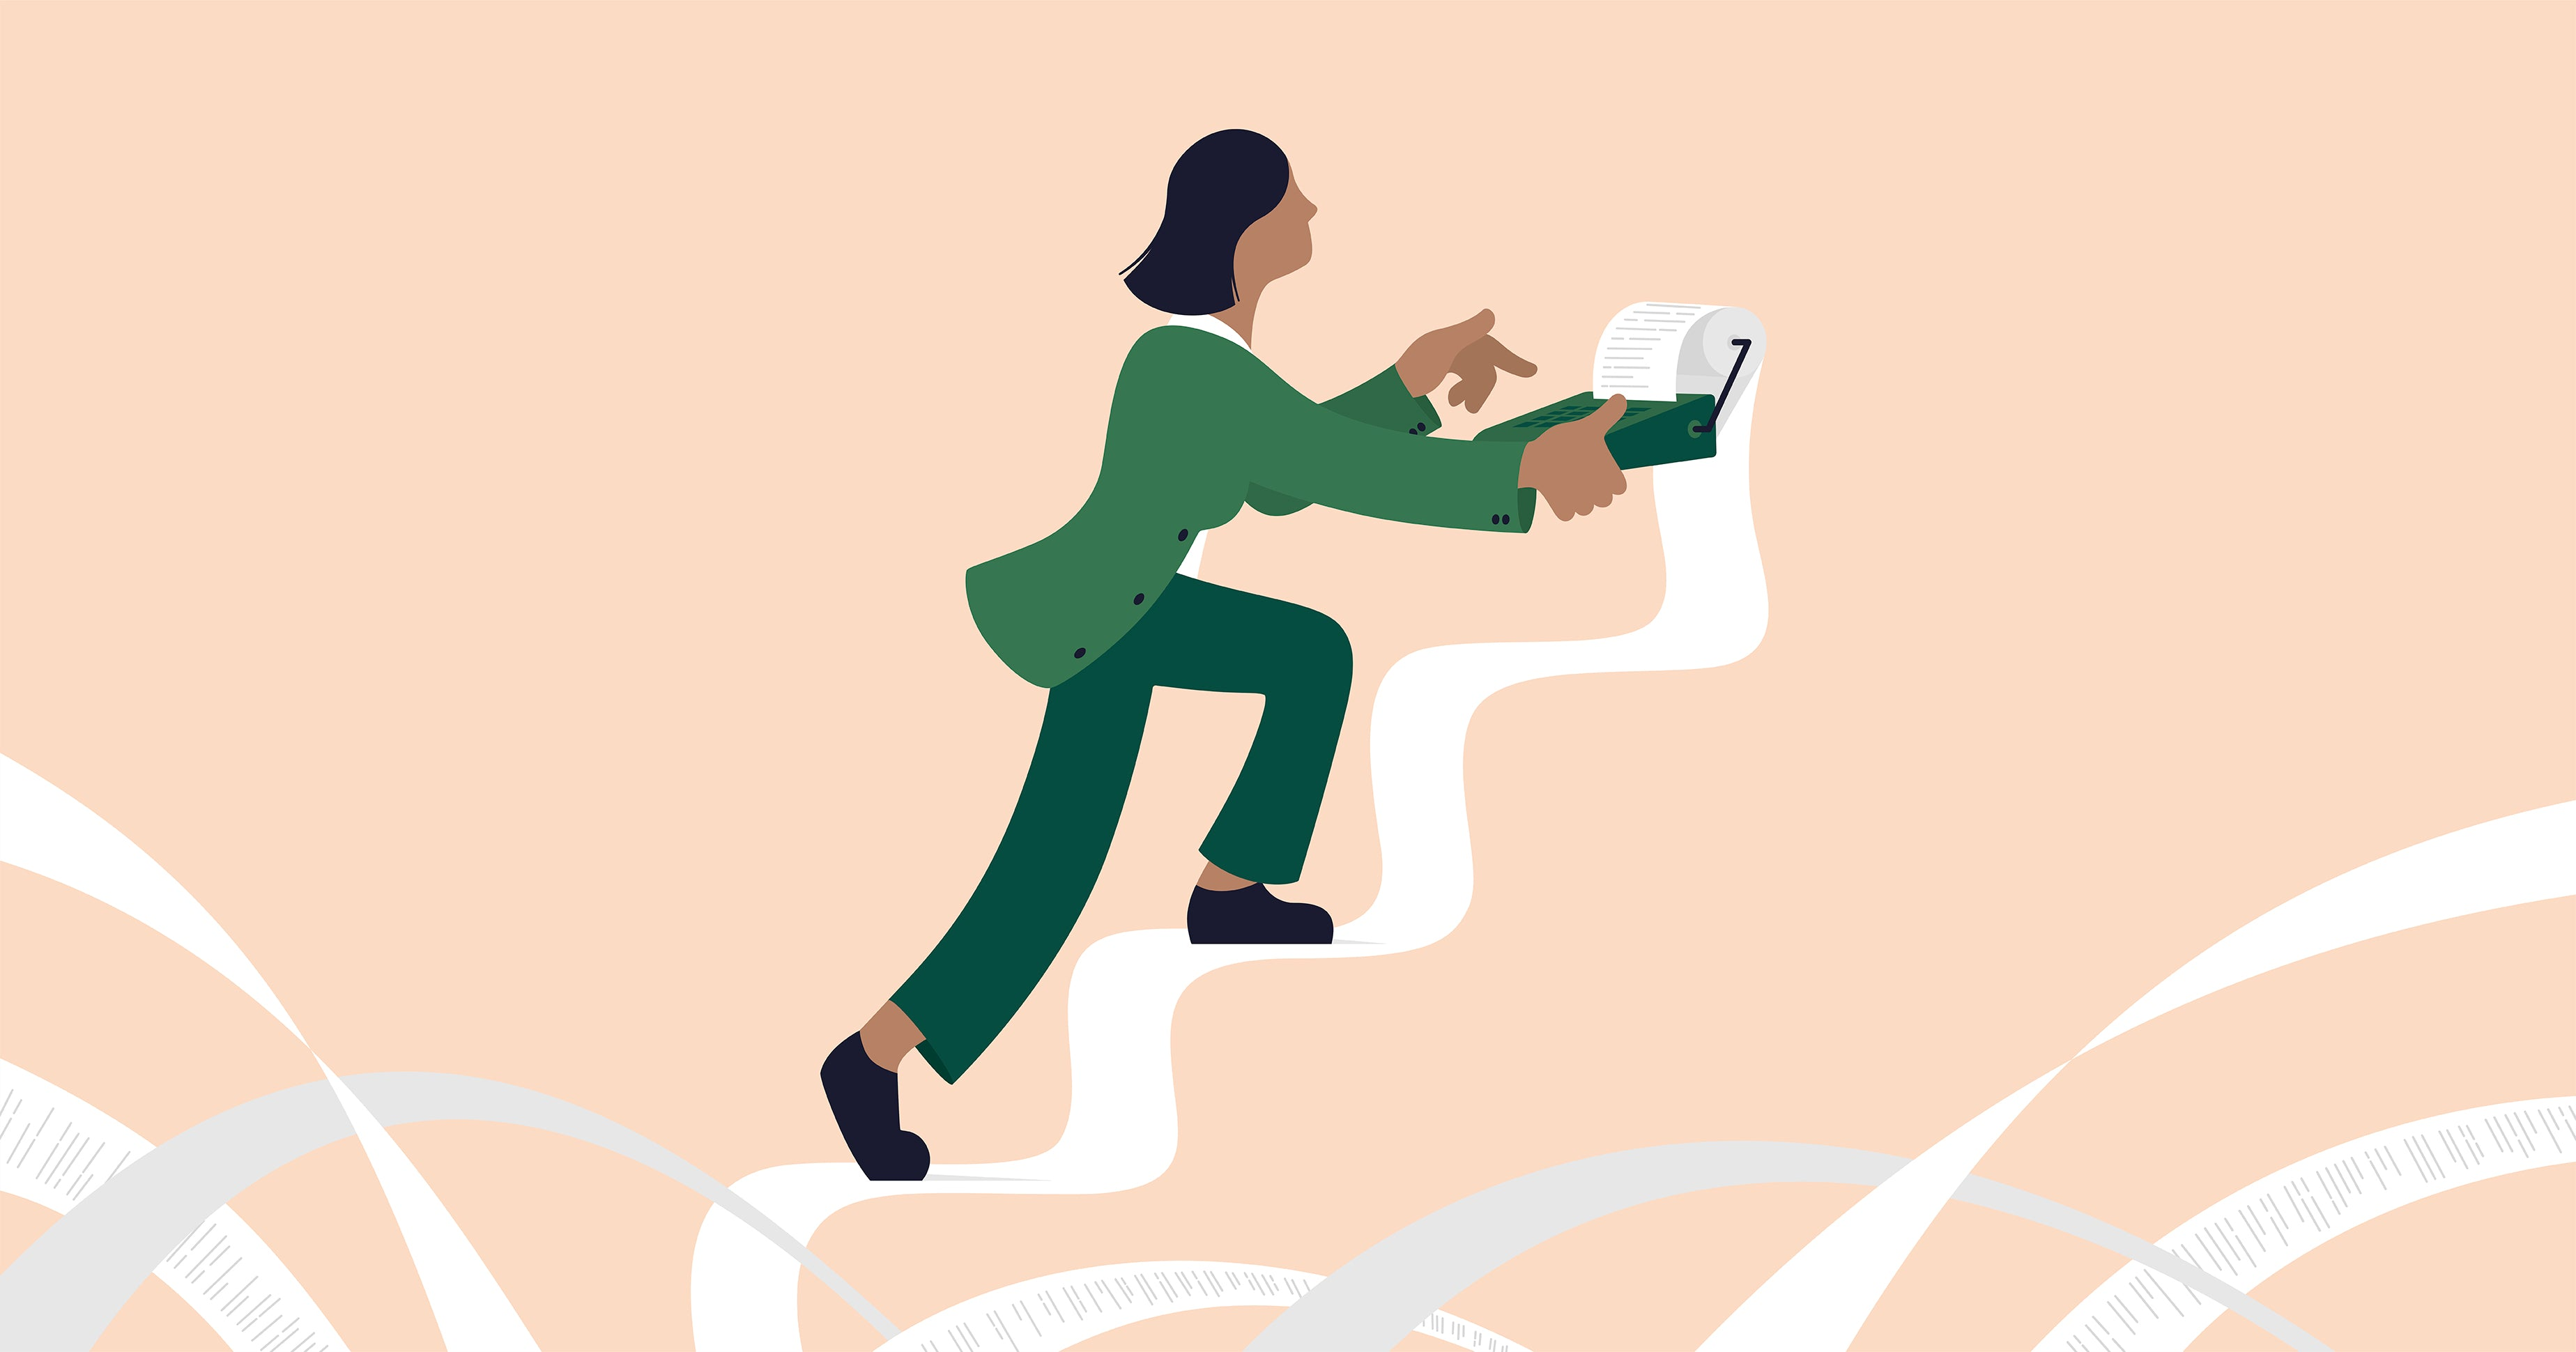 Illustration of a female character walking up stairs which is made up of her accounting records.